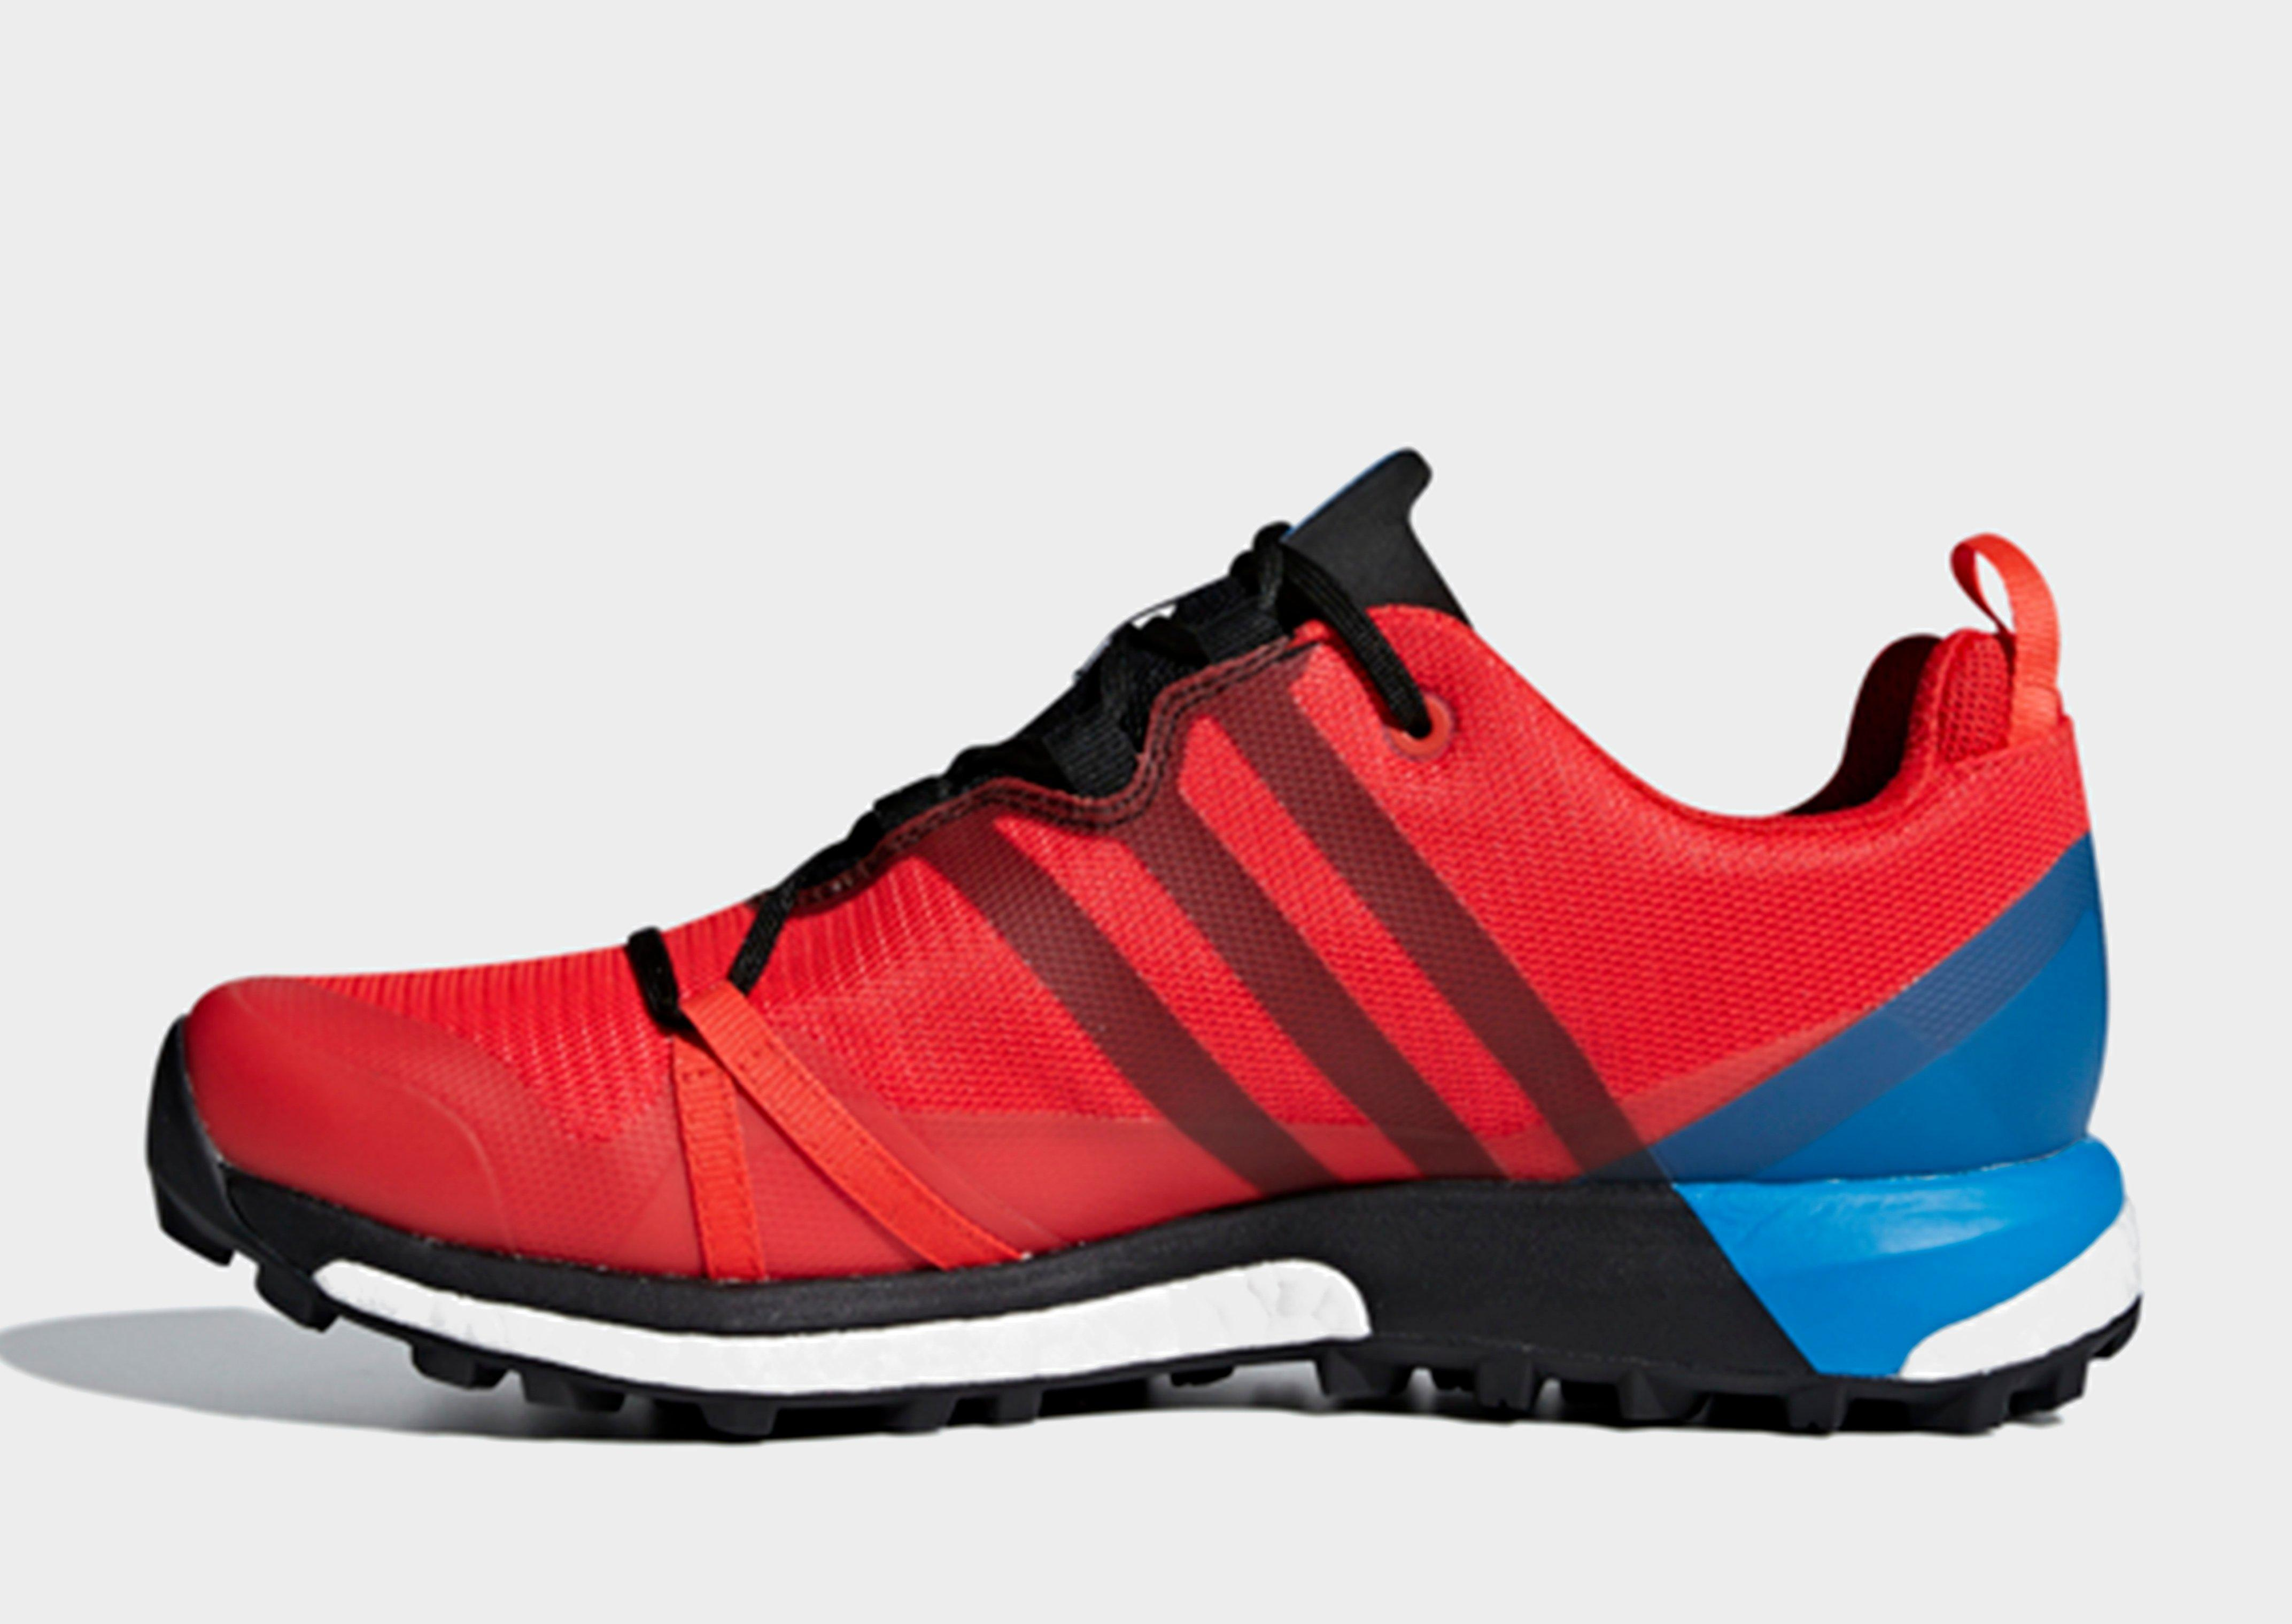 36900fd0c038 Terrex Agravic Speed By Adidas - Photos Adidas Collections